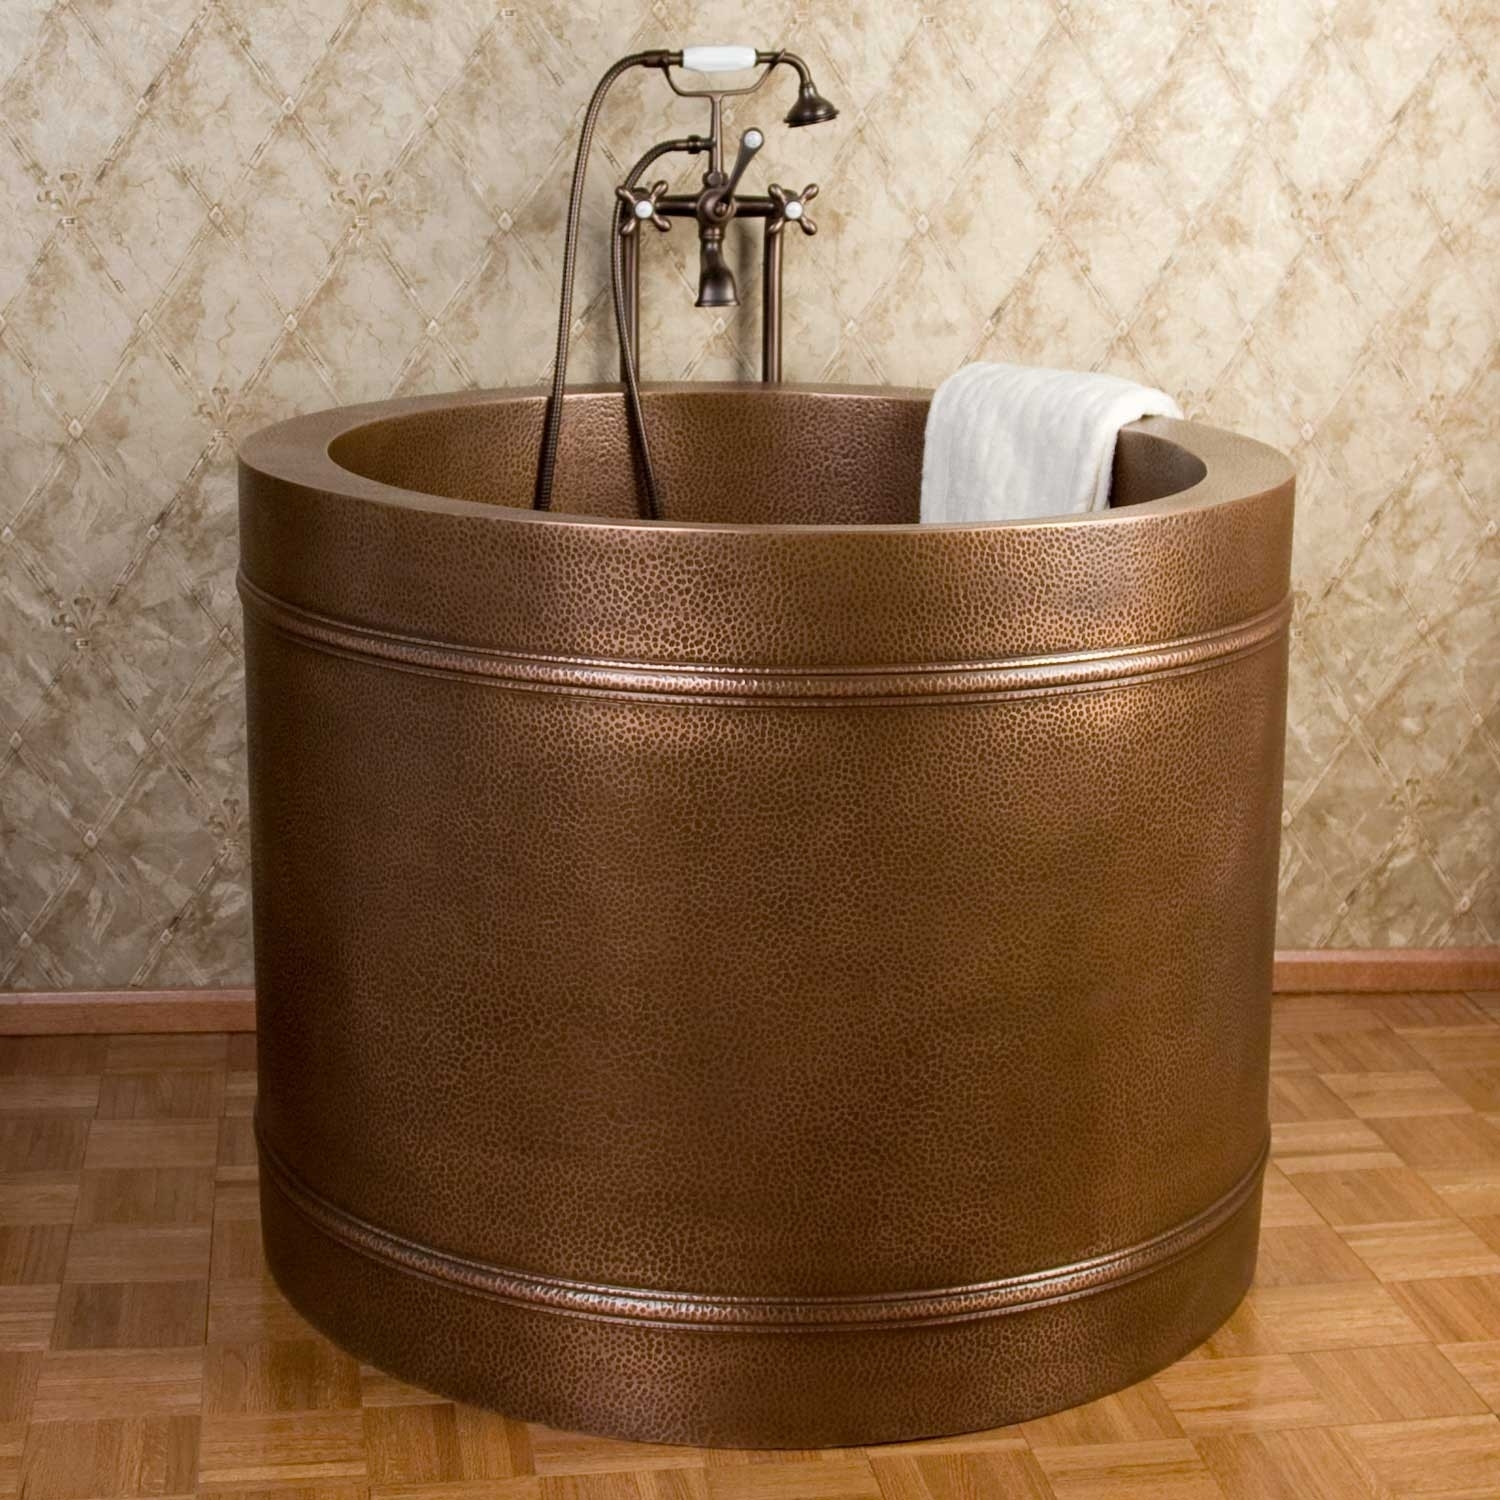 How To Build Japanese Soaker Tub Randolph Indoor And